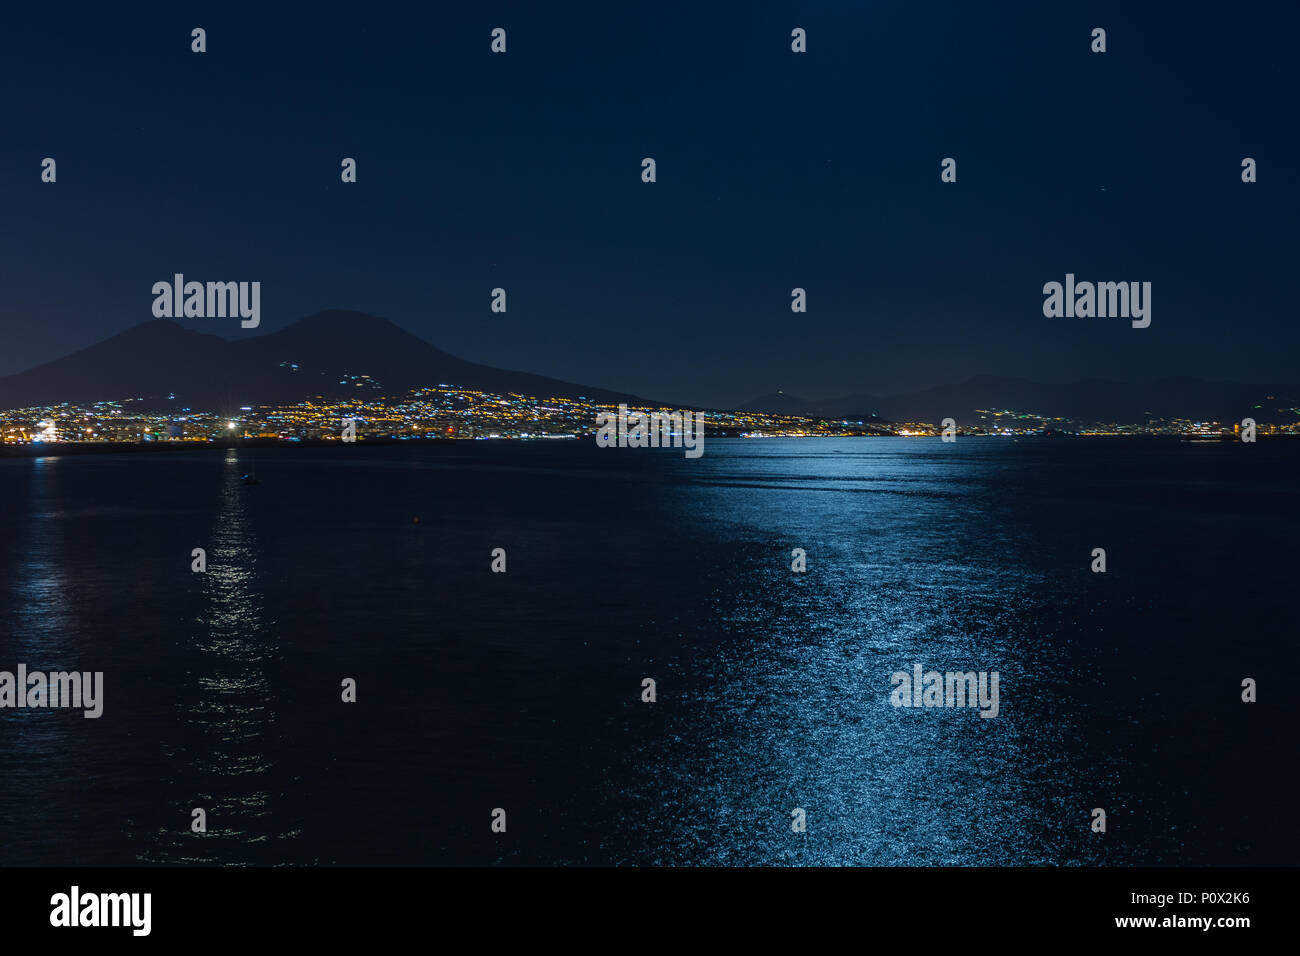 Gulf of Naples in the night. - Stock Image